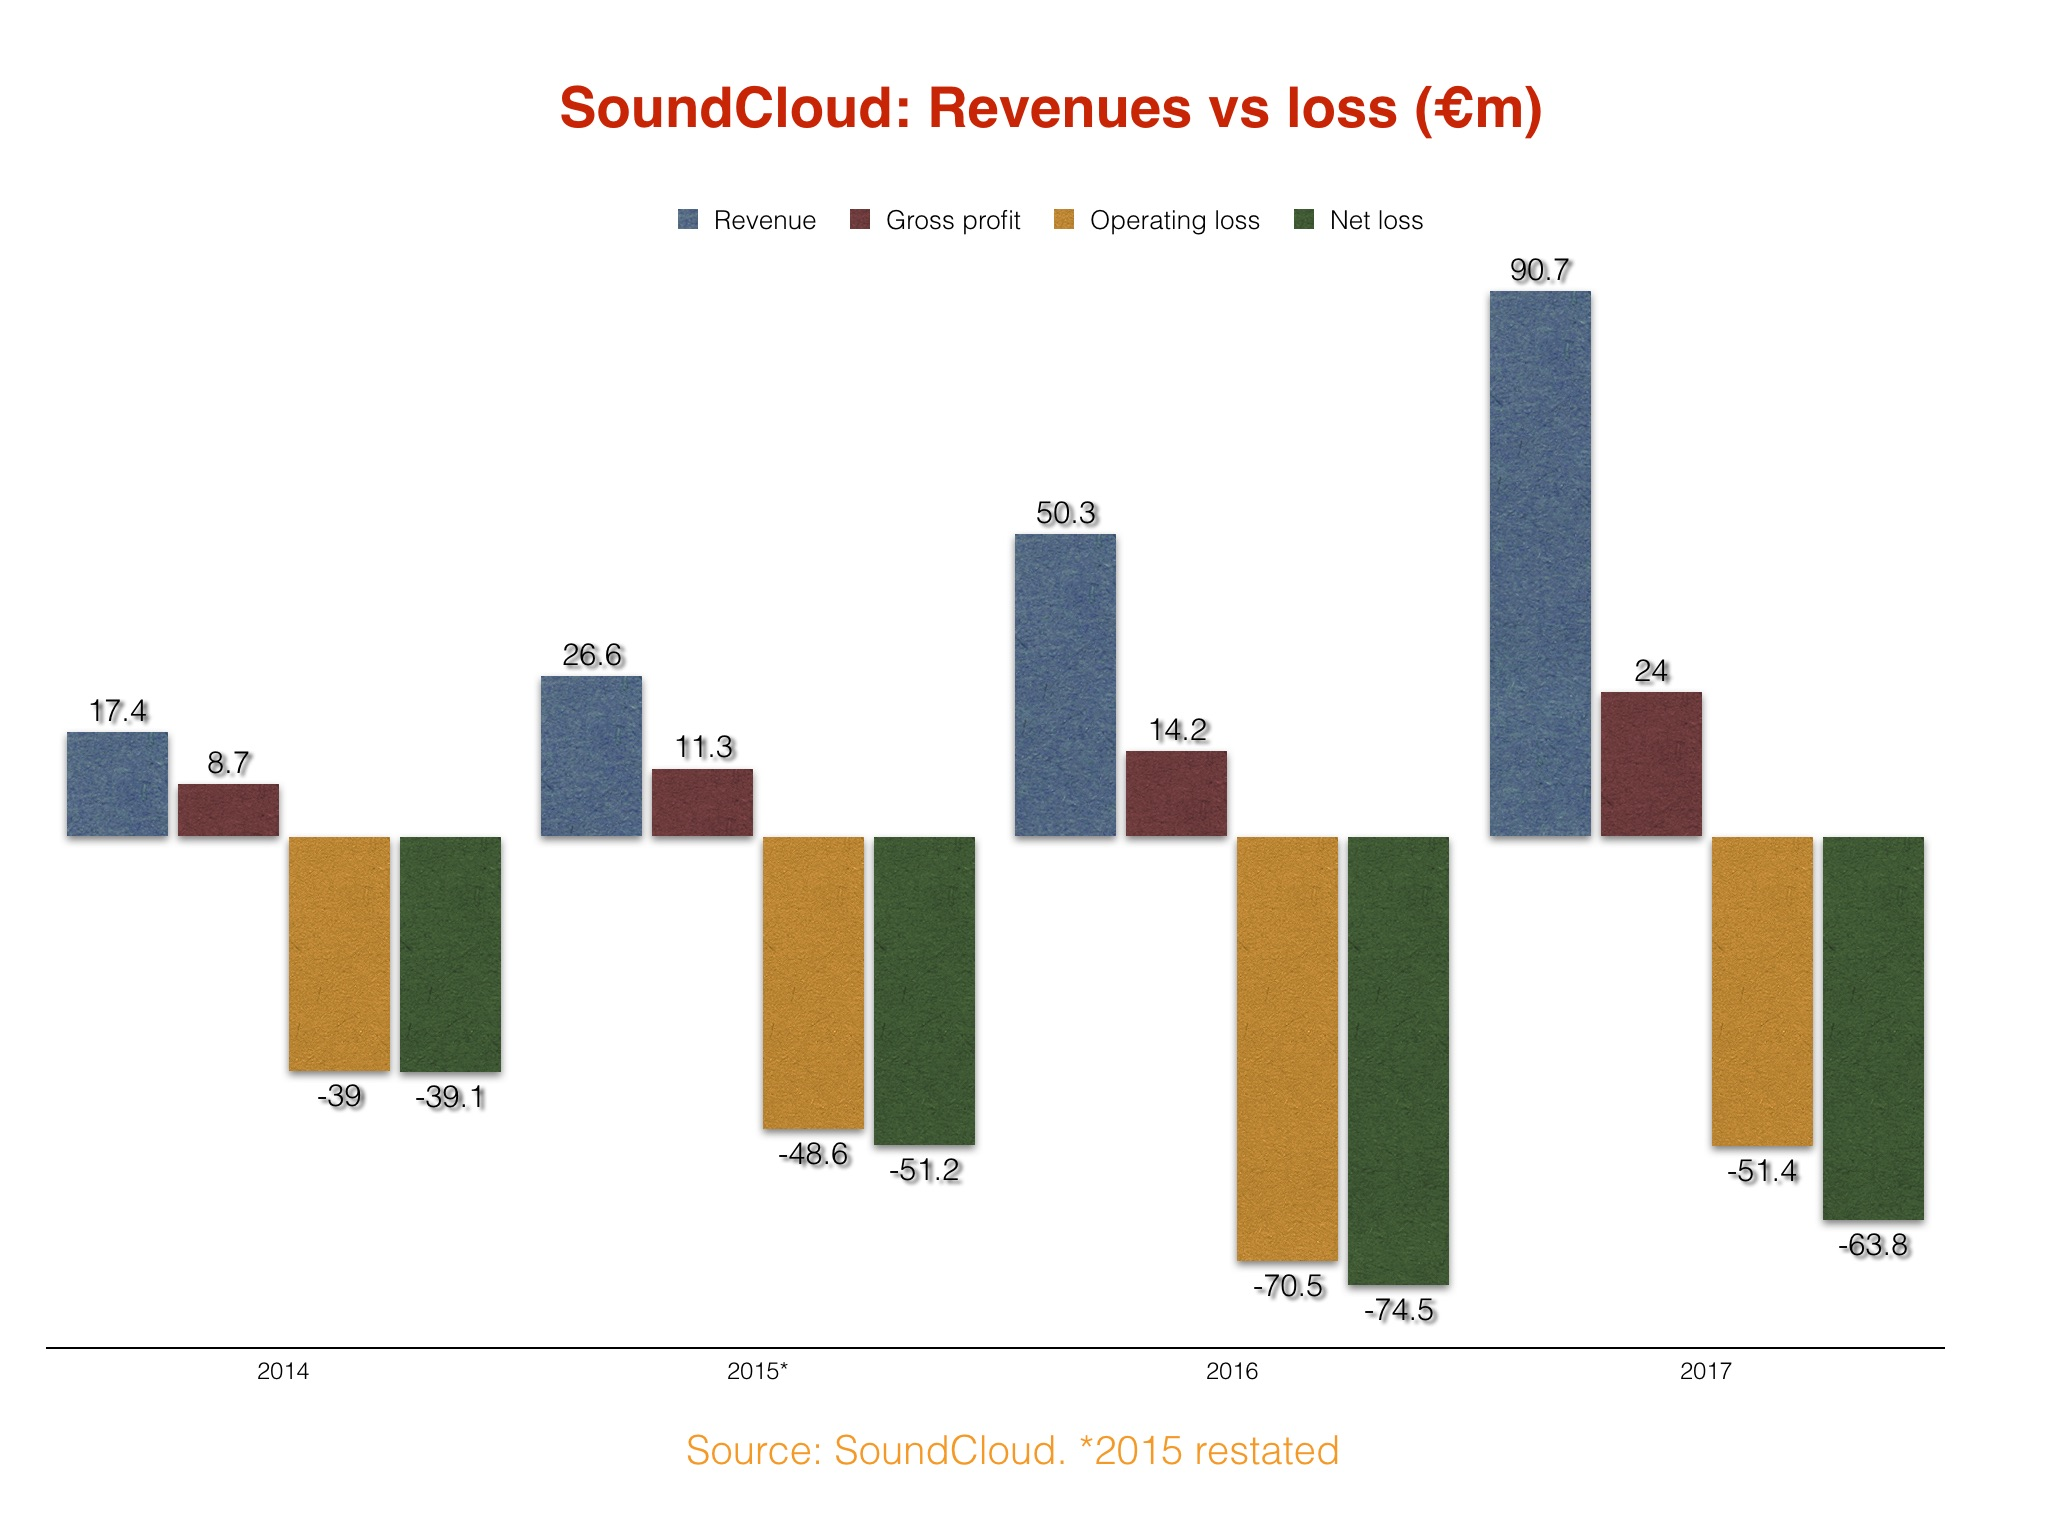 SoundCloud revenues grew 80% to top $100m in 2017, as losses ...